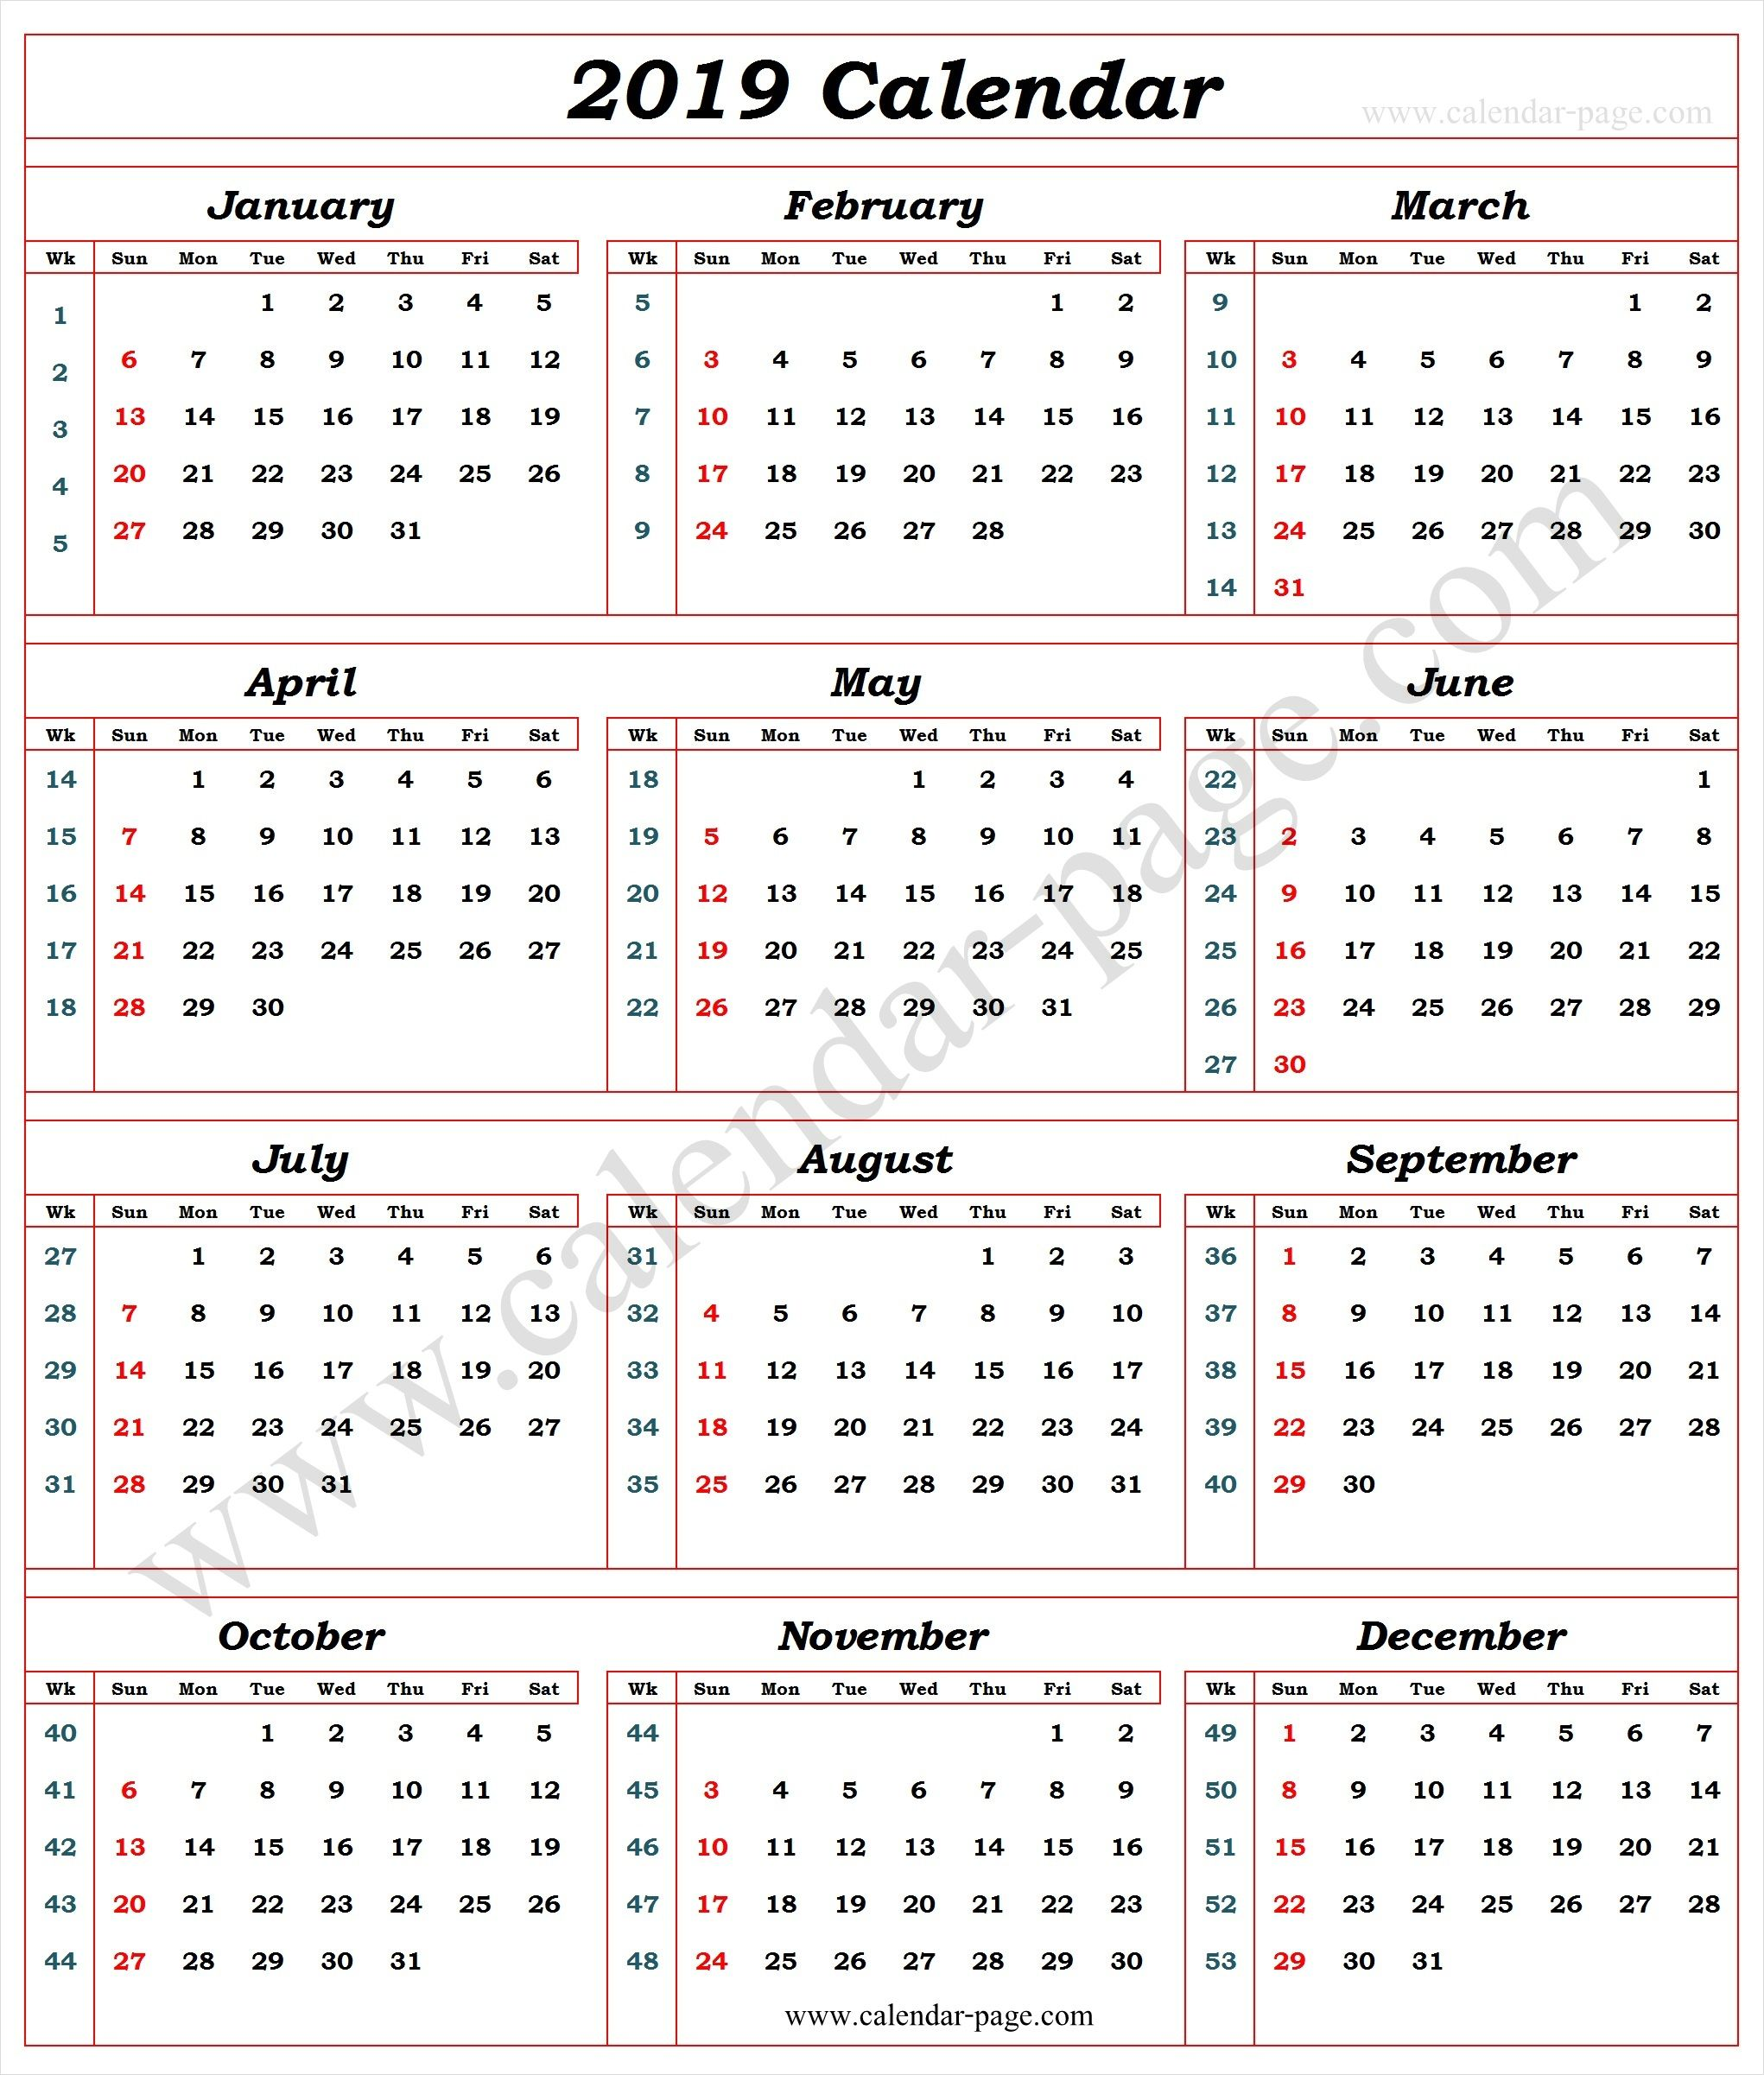 2019 Calendar With Week Numbers Calendar 2019 With Week Numbers | 2019 Calendar Template